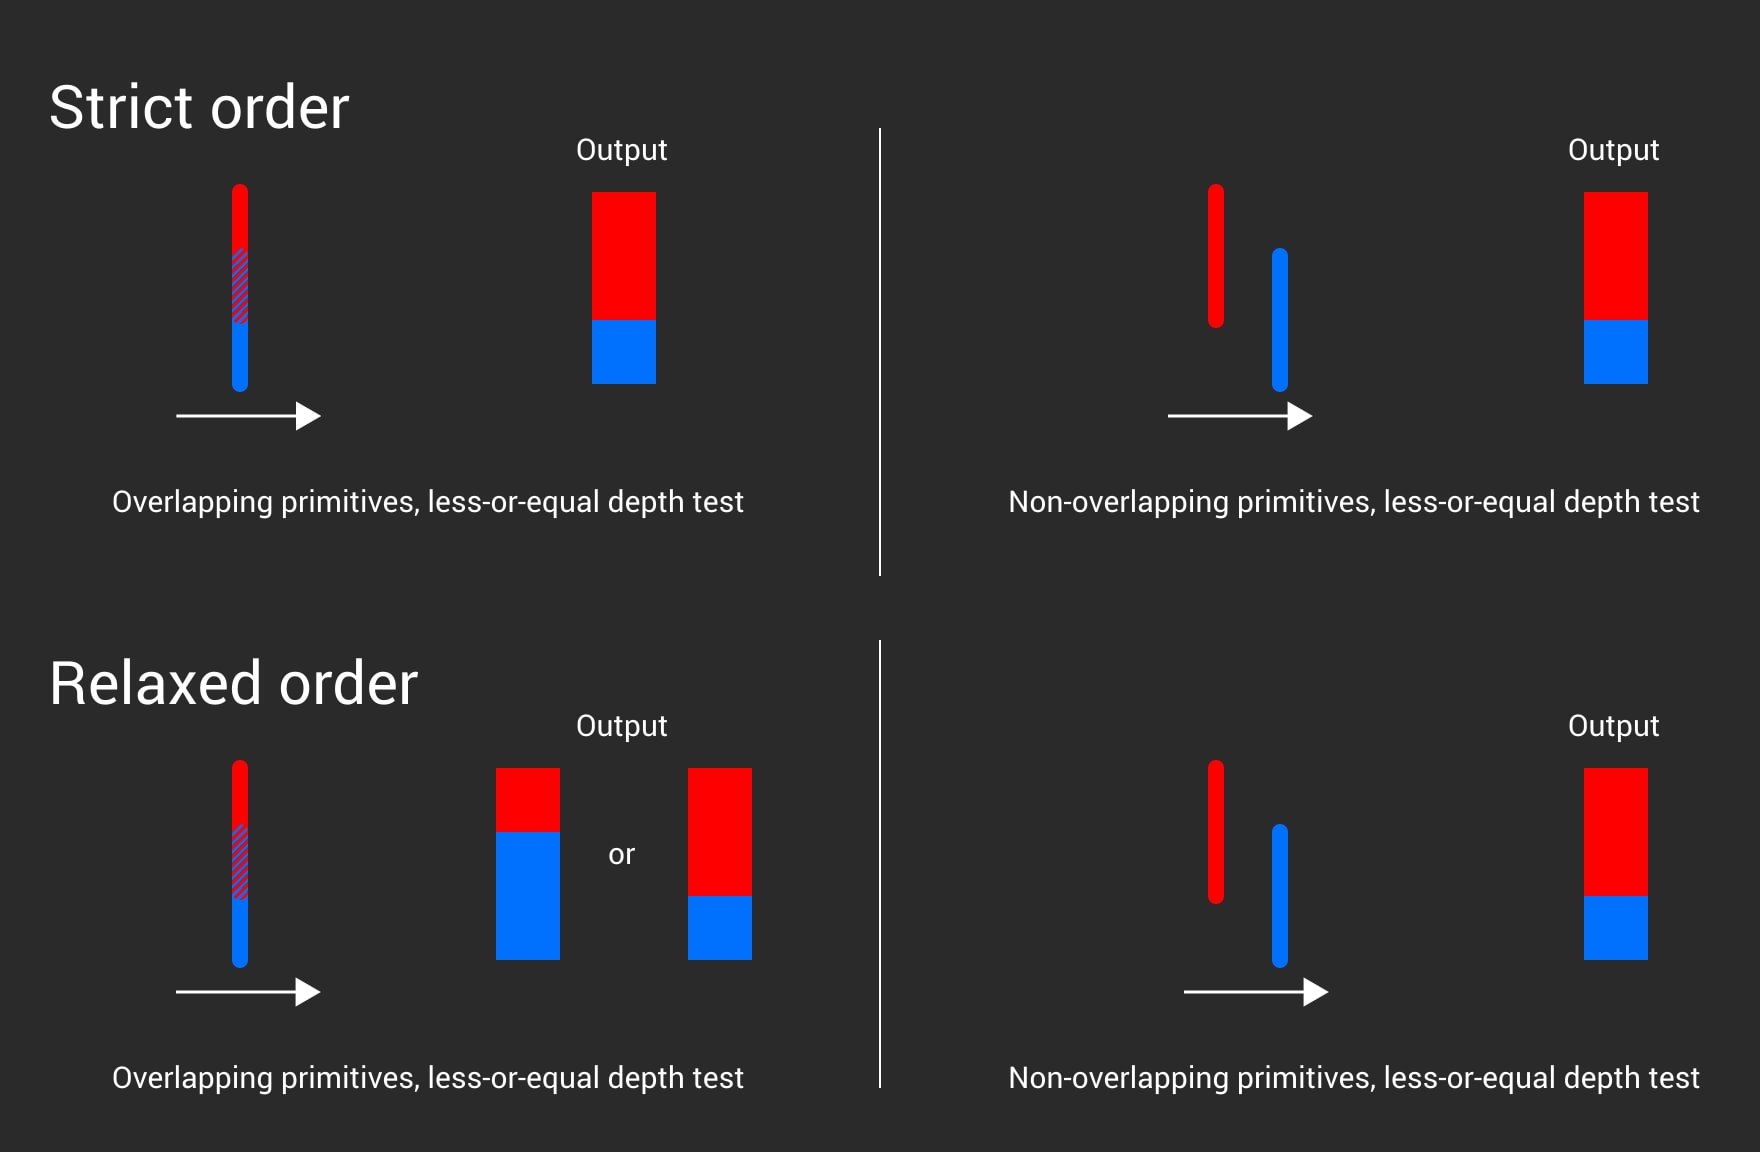 Comparison of strict and relaxed ordering, showing that the only possible difference is in case of overlapping primitives. In those case, there is no tie-braker rule when relaxed order is in effect.